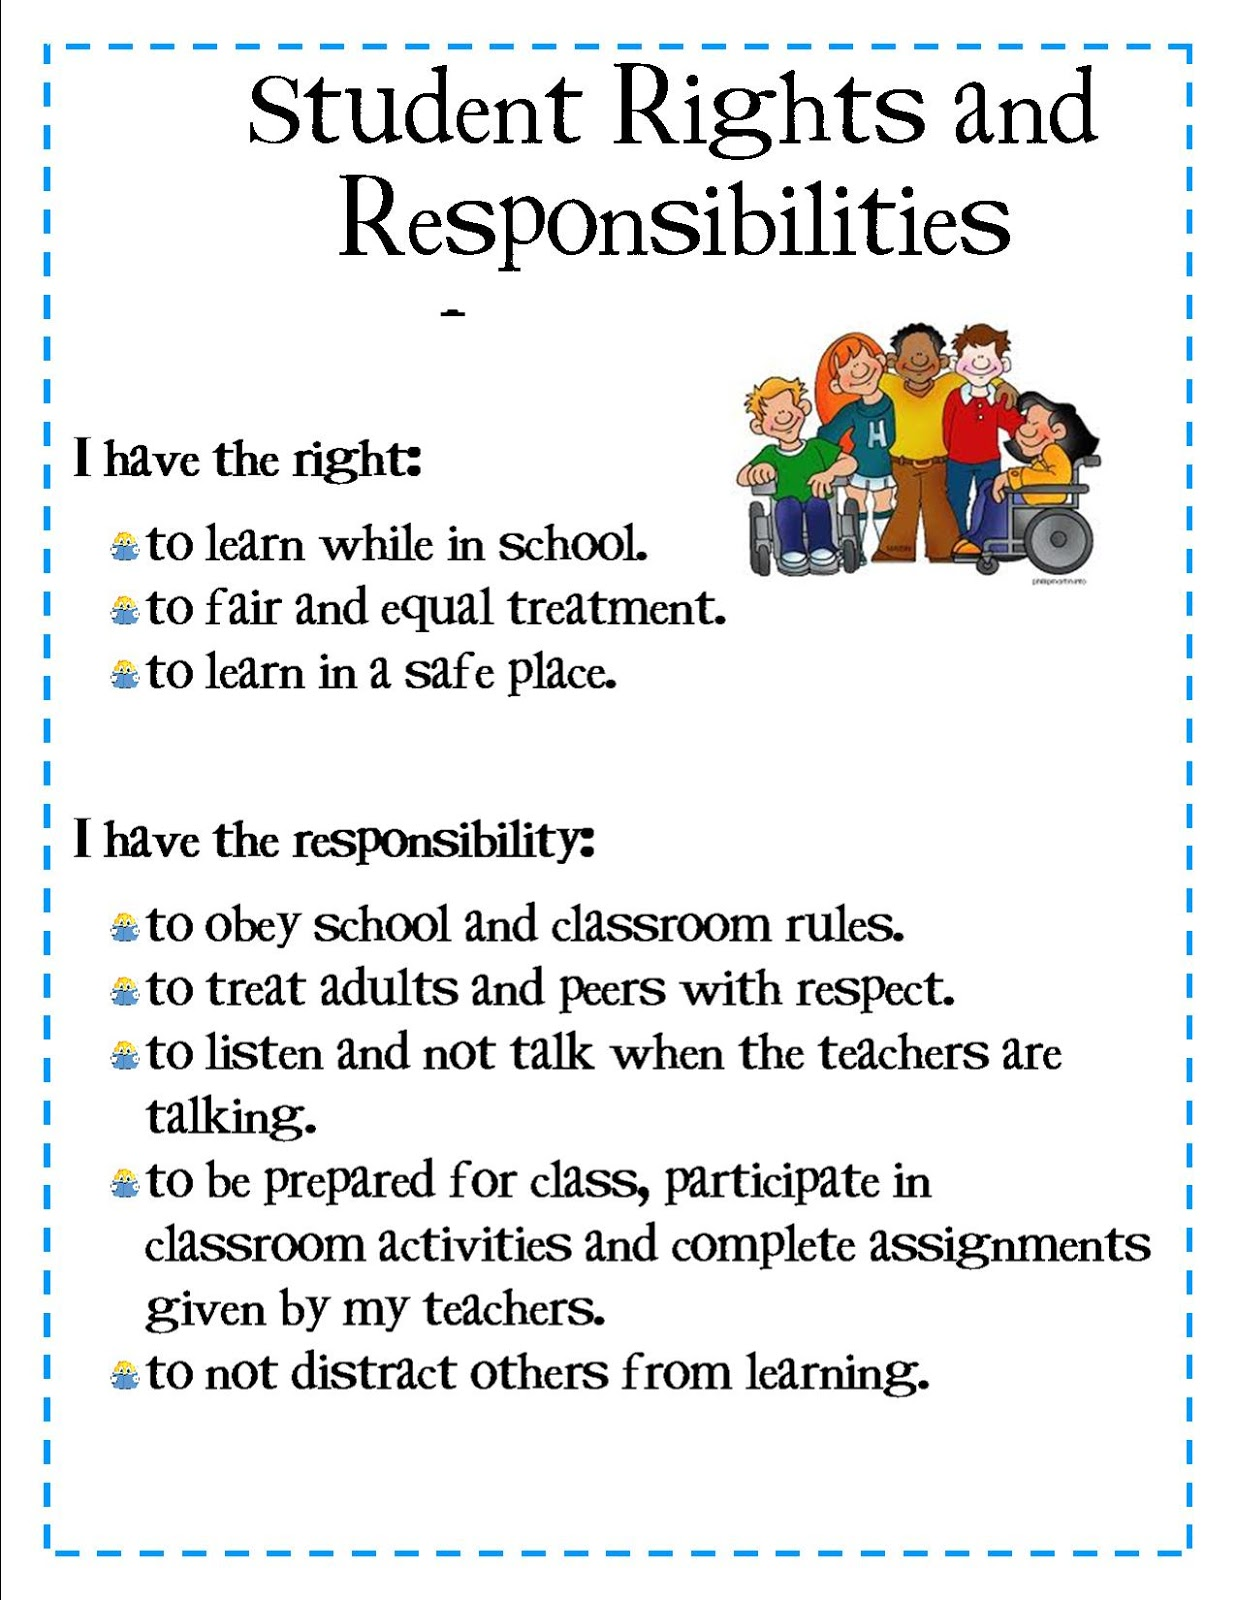 Duties and responsibilities of a student